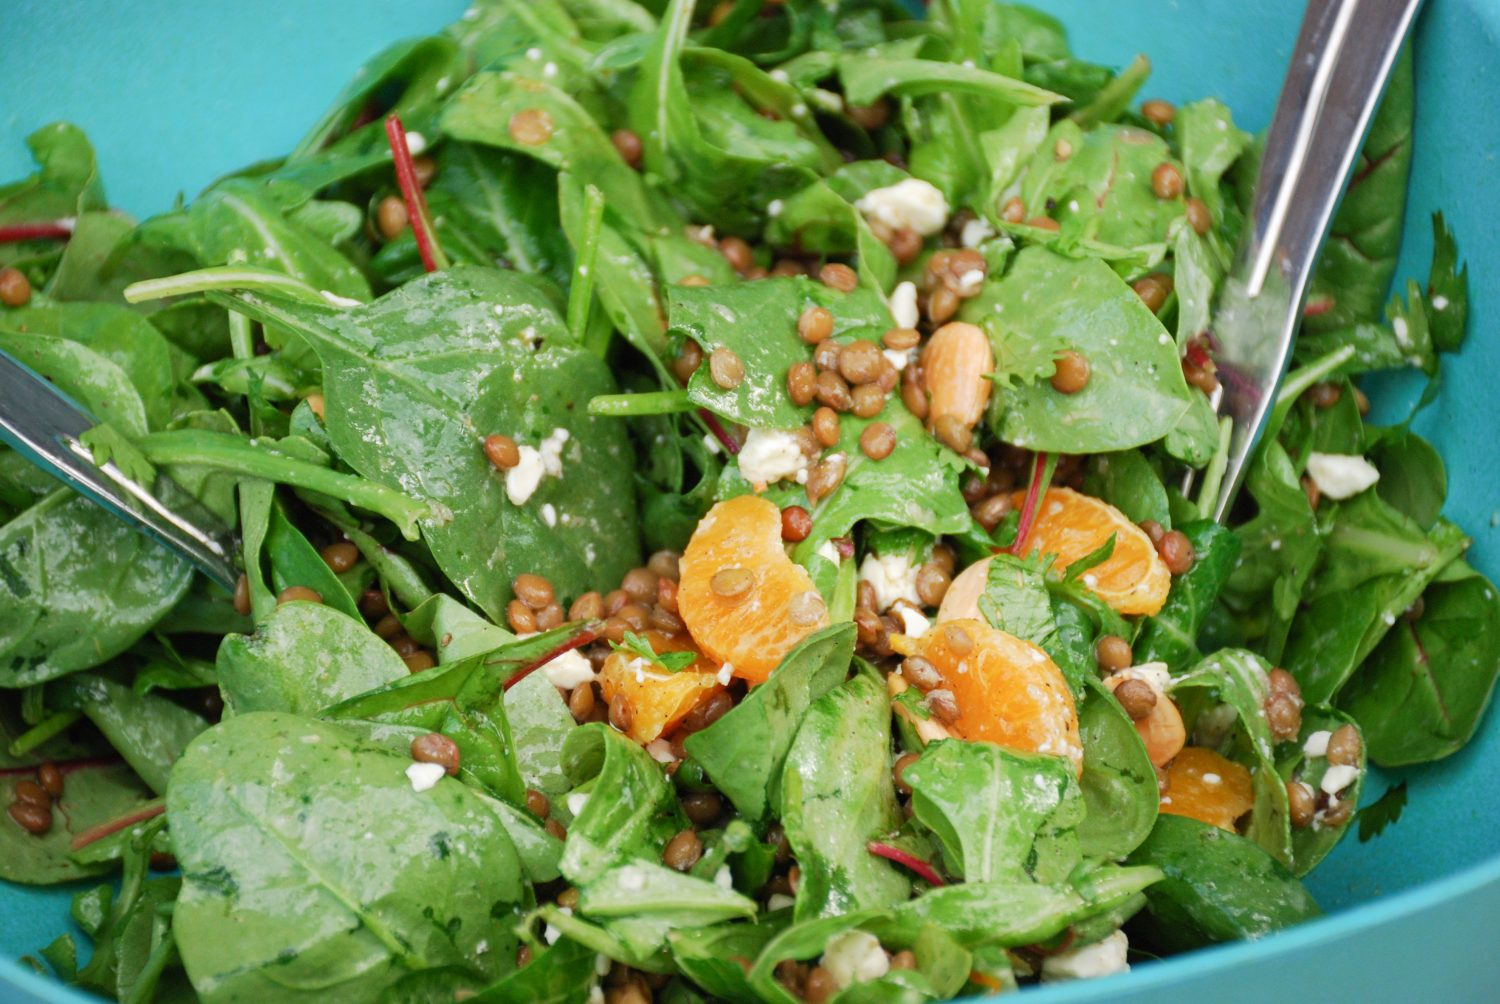 Spinach Salad with Lentils, Oranges & Dates